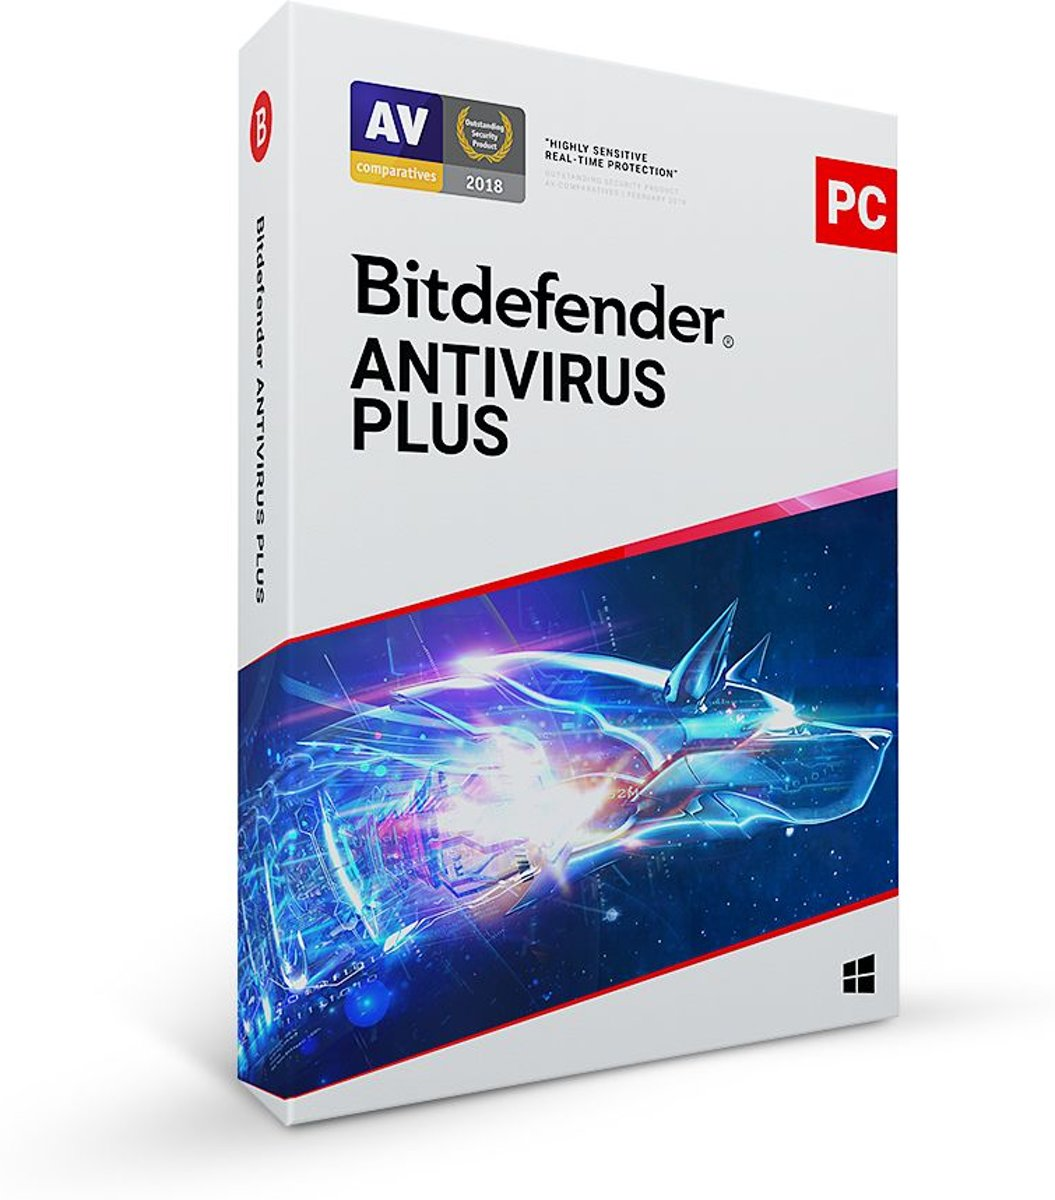 Bitdefender Antivirus Plus 2020 - 3 Apparaten - 2 Jaar - Nederlands - Windows Download